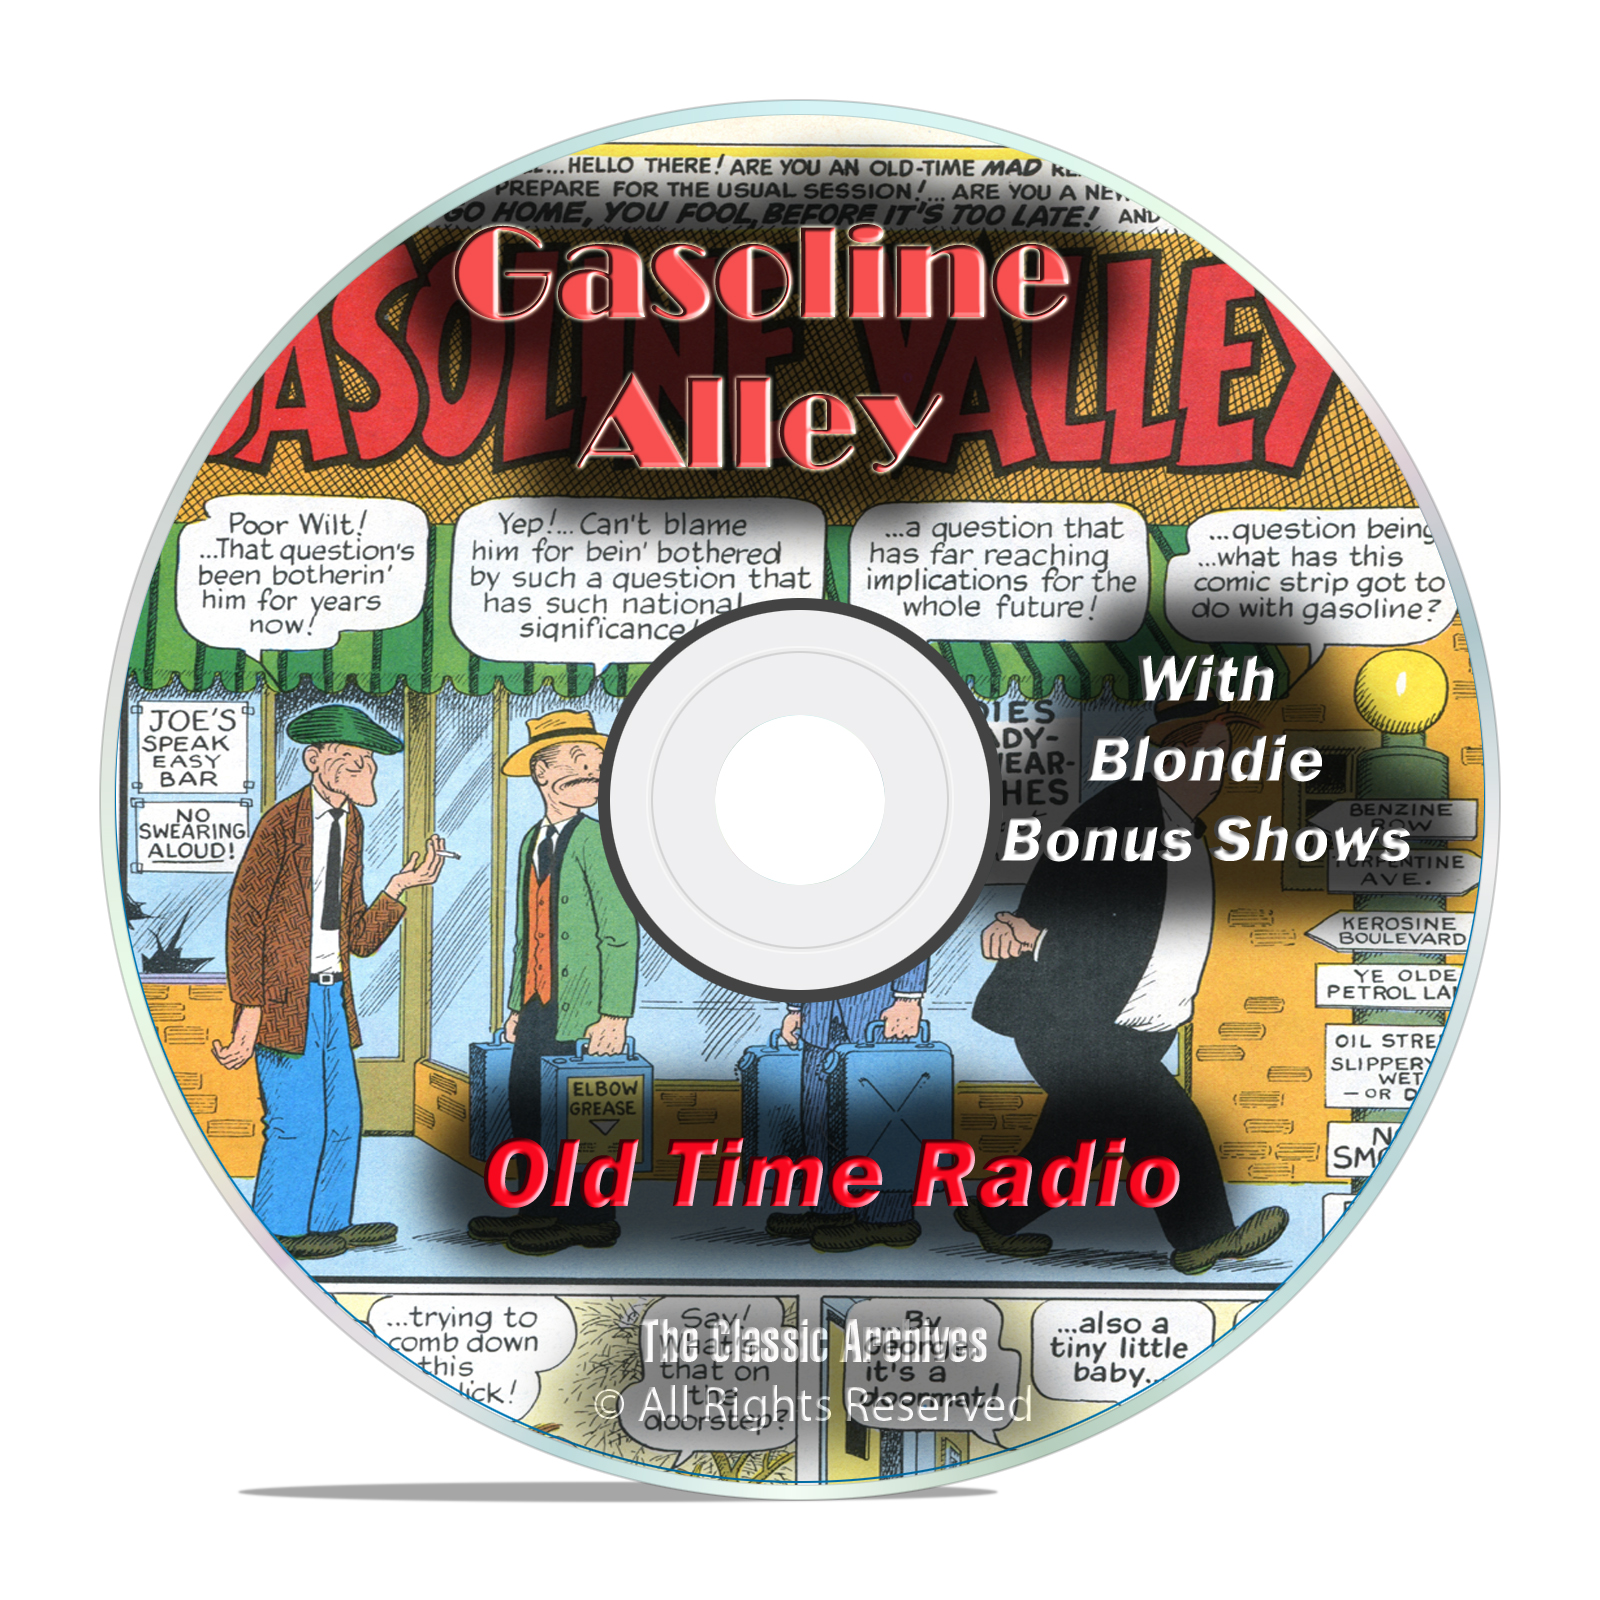 Gasoline Alley, and Blondie, 931 Old Time Radio Shows, Comedy Shows OTR